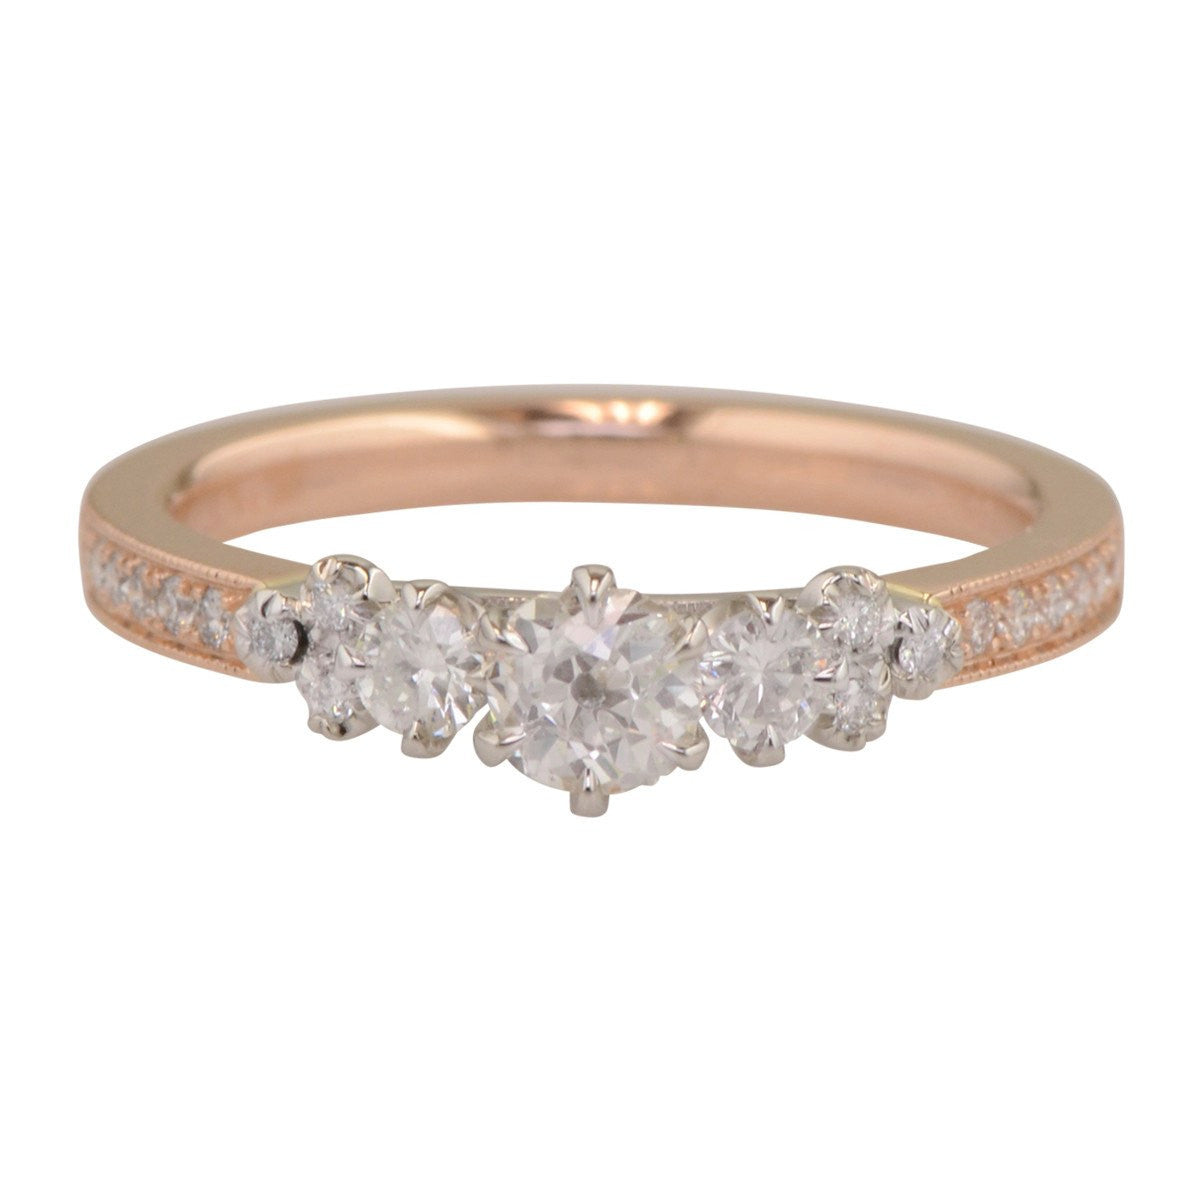 Engagement Ring in Rose Gold and Diamond 'Damask Rose'